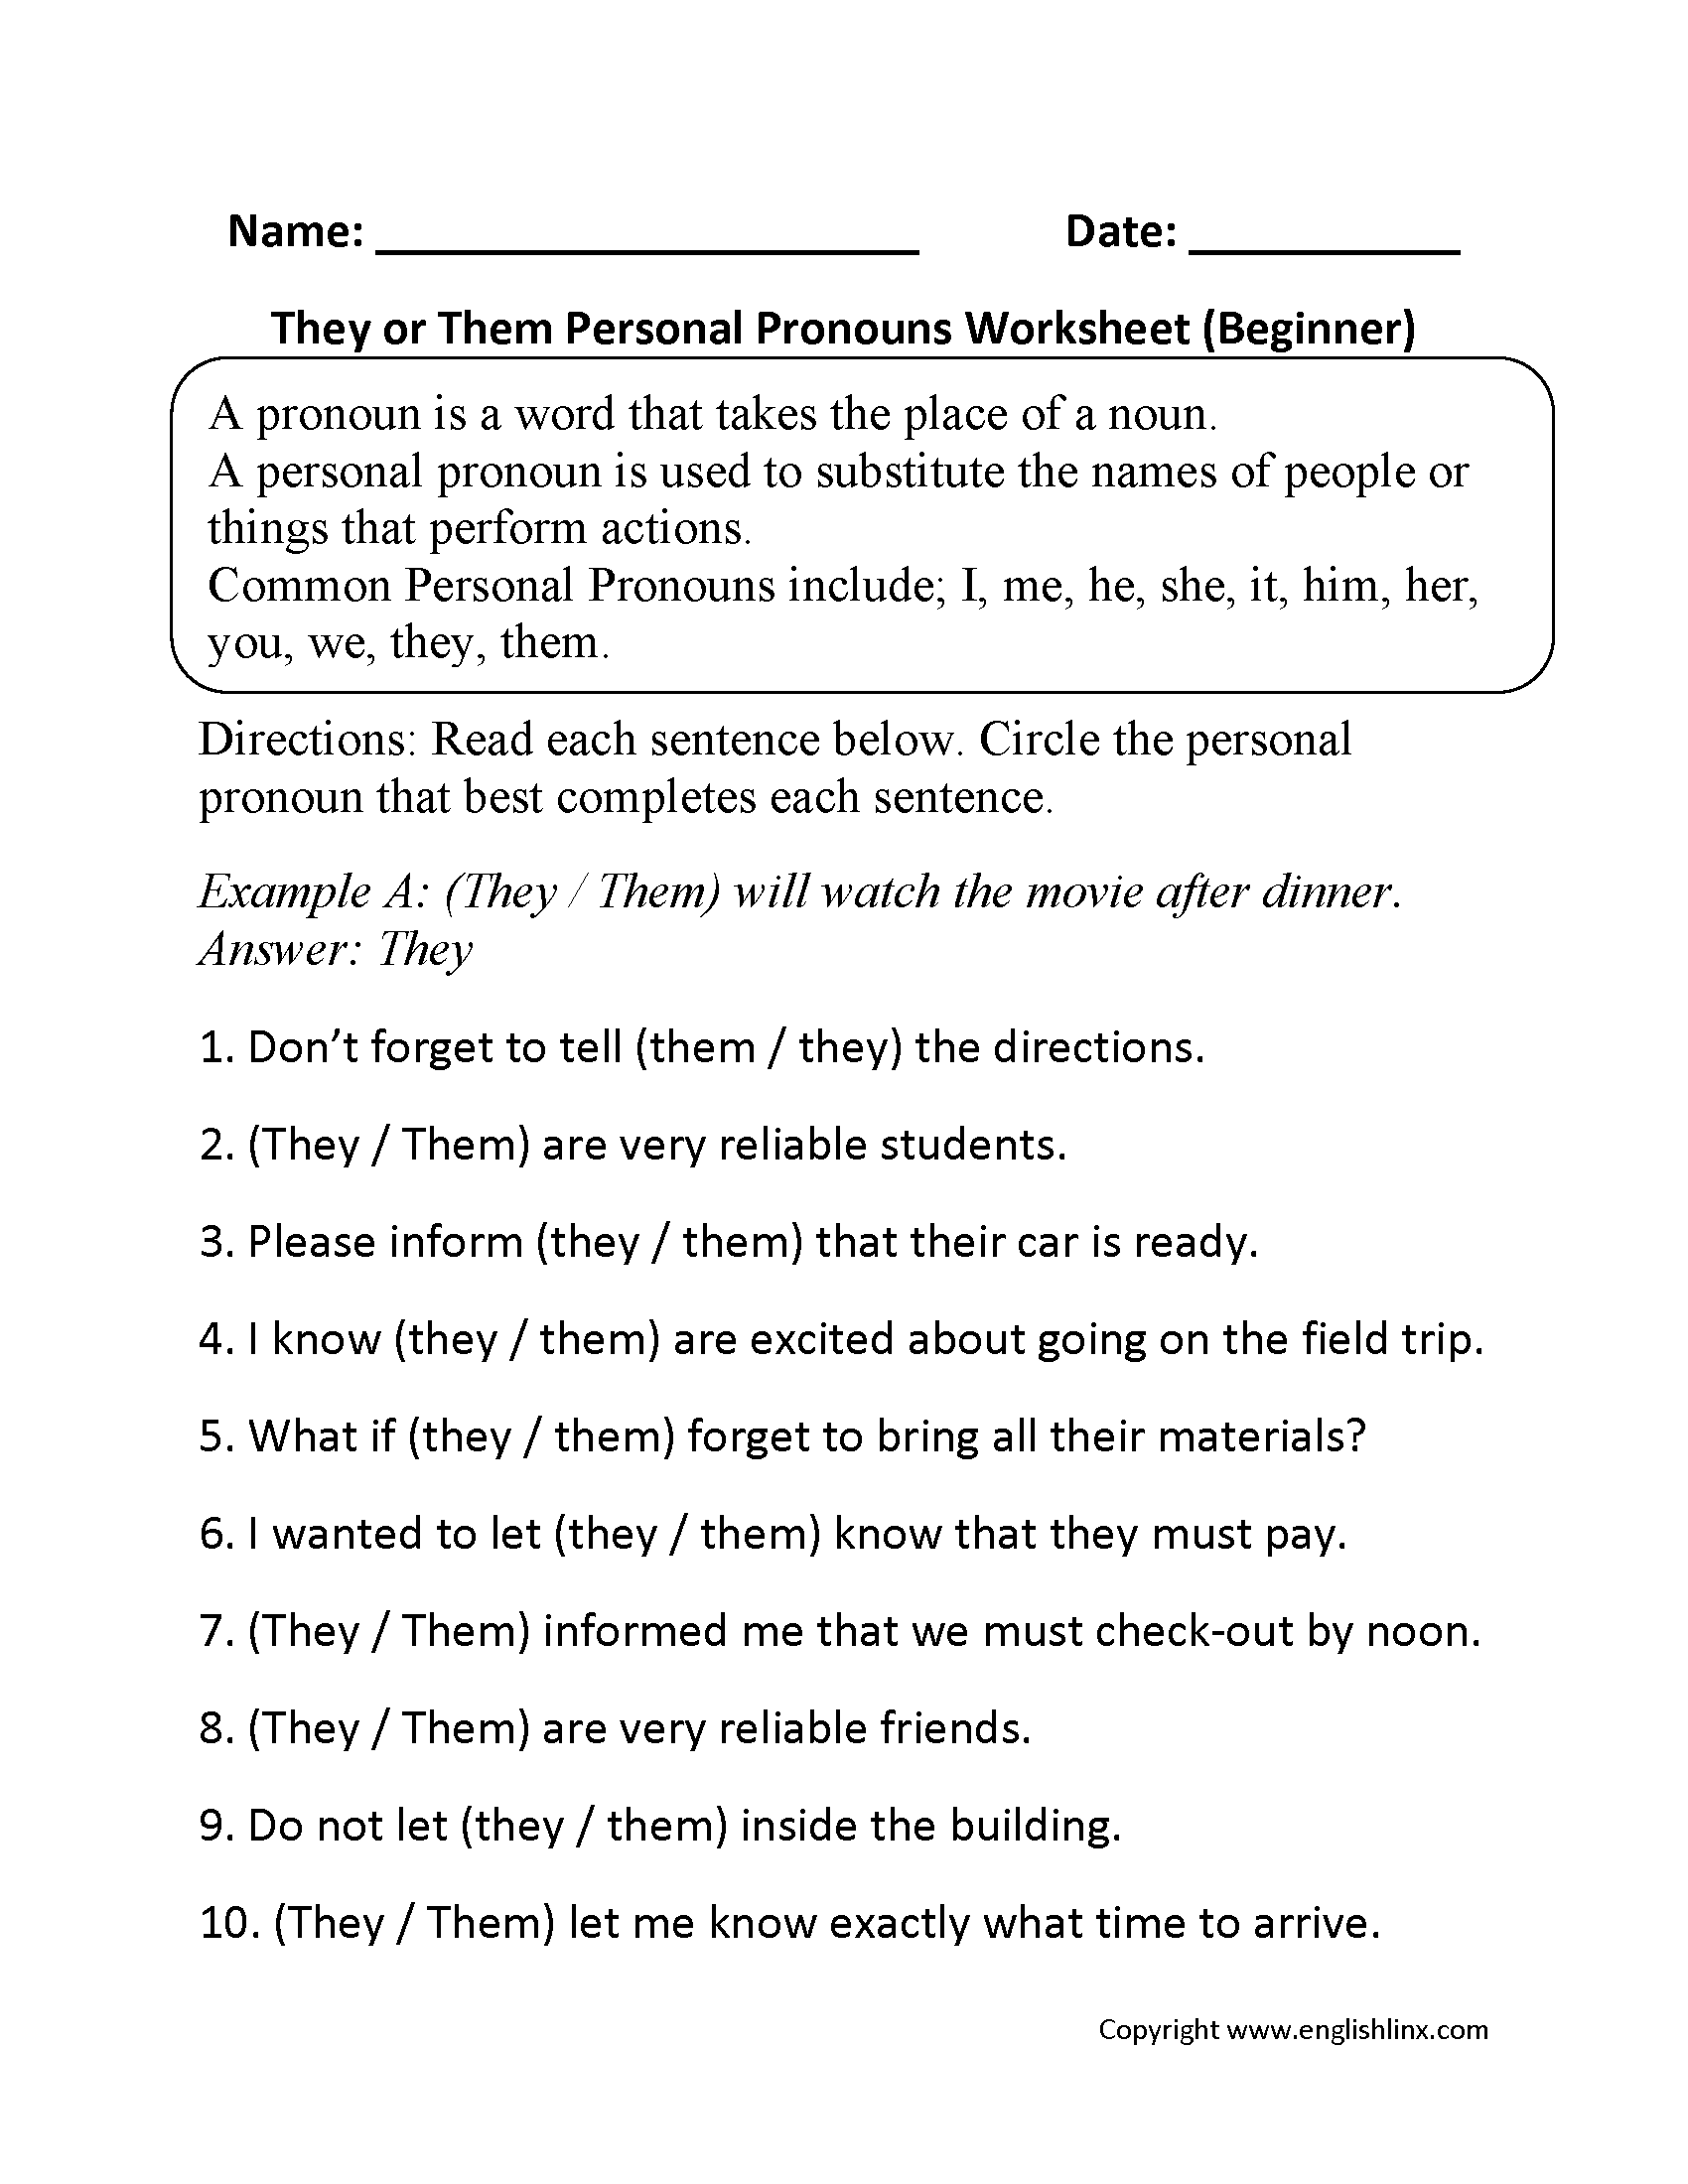 Printables Personal Pronouns Worksheet pronouns worksheets personal beginner